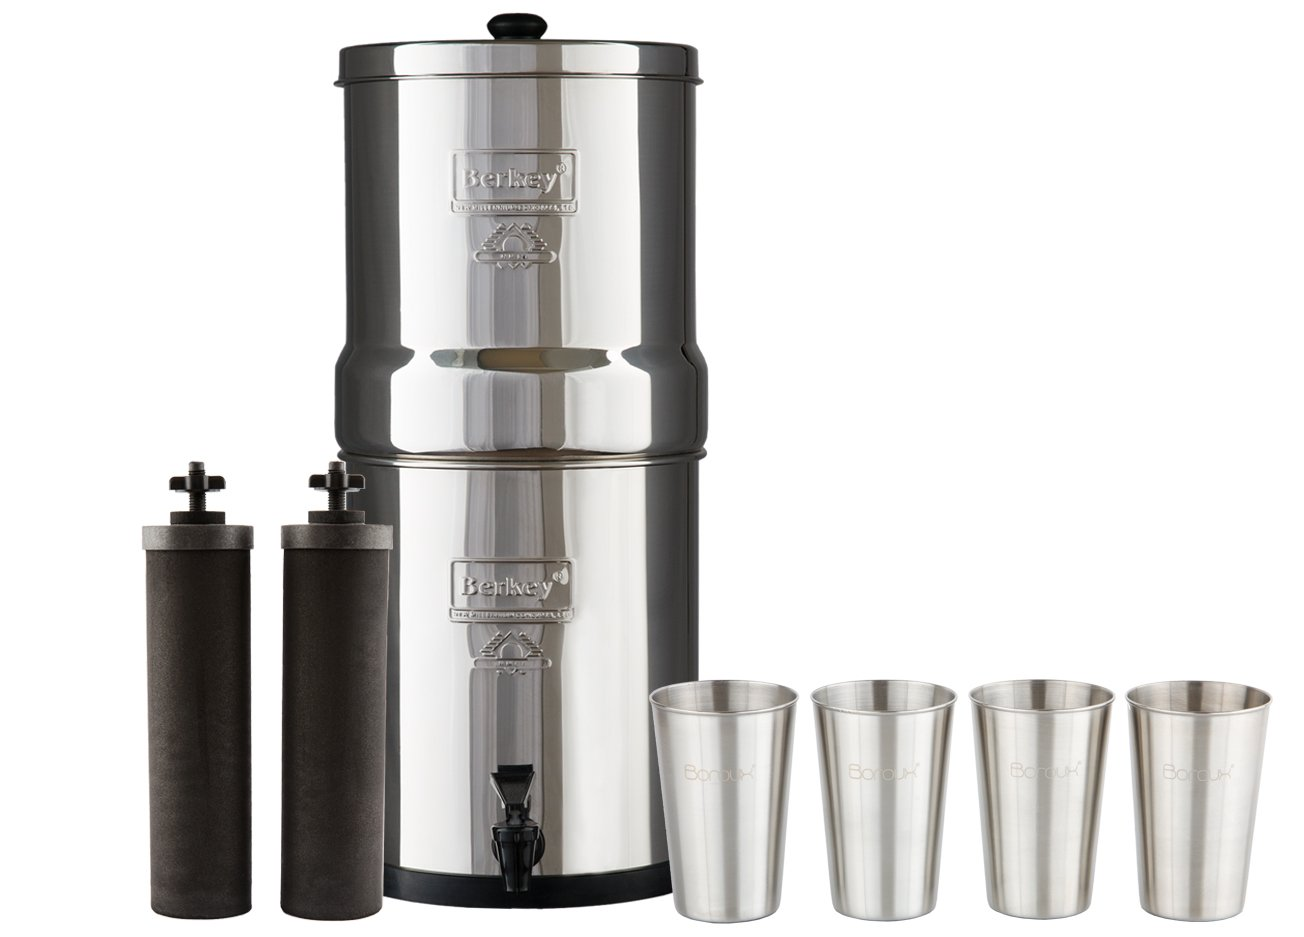 Big Berkey Water Filter with 2 Black Purifier Filters (2 Gallons) System Bundled with 1-set of 4 Boroux 12 oz Stainless Steel Cups for drinking the best tasting water